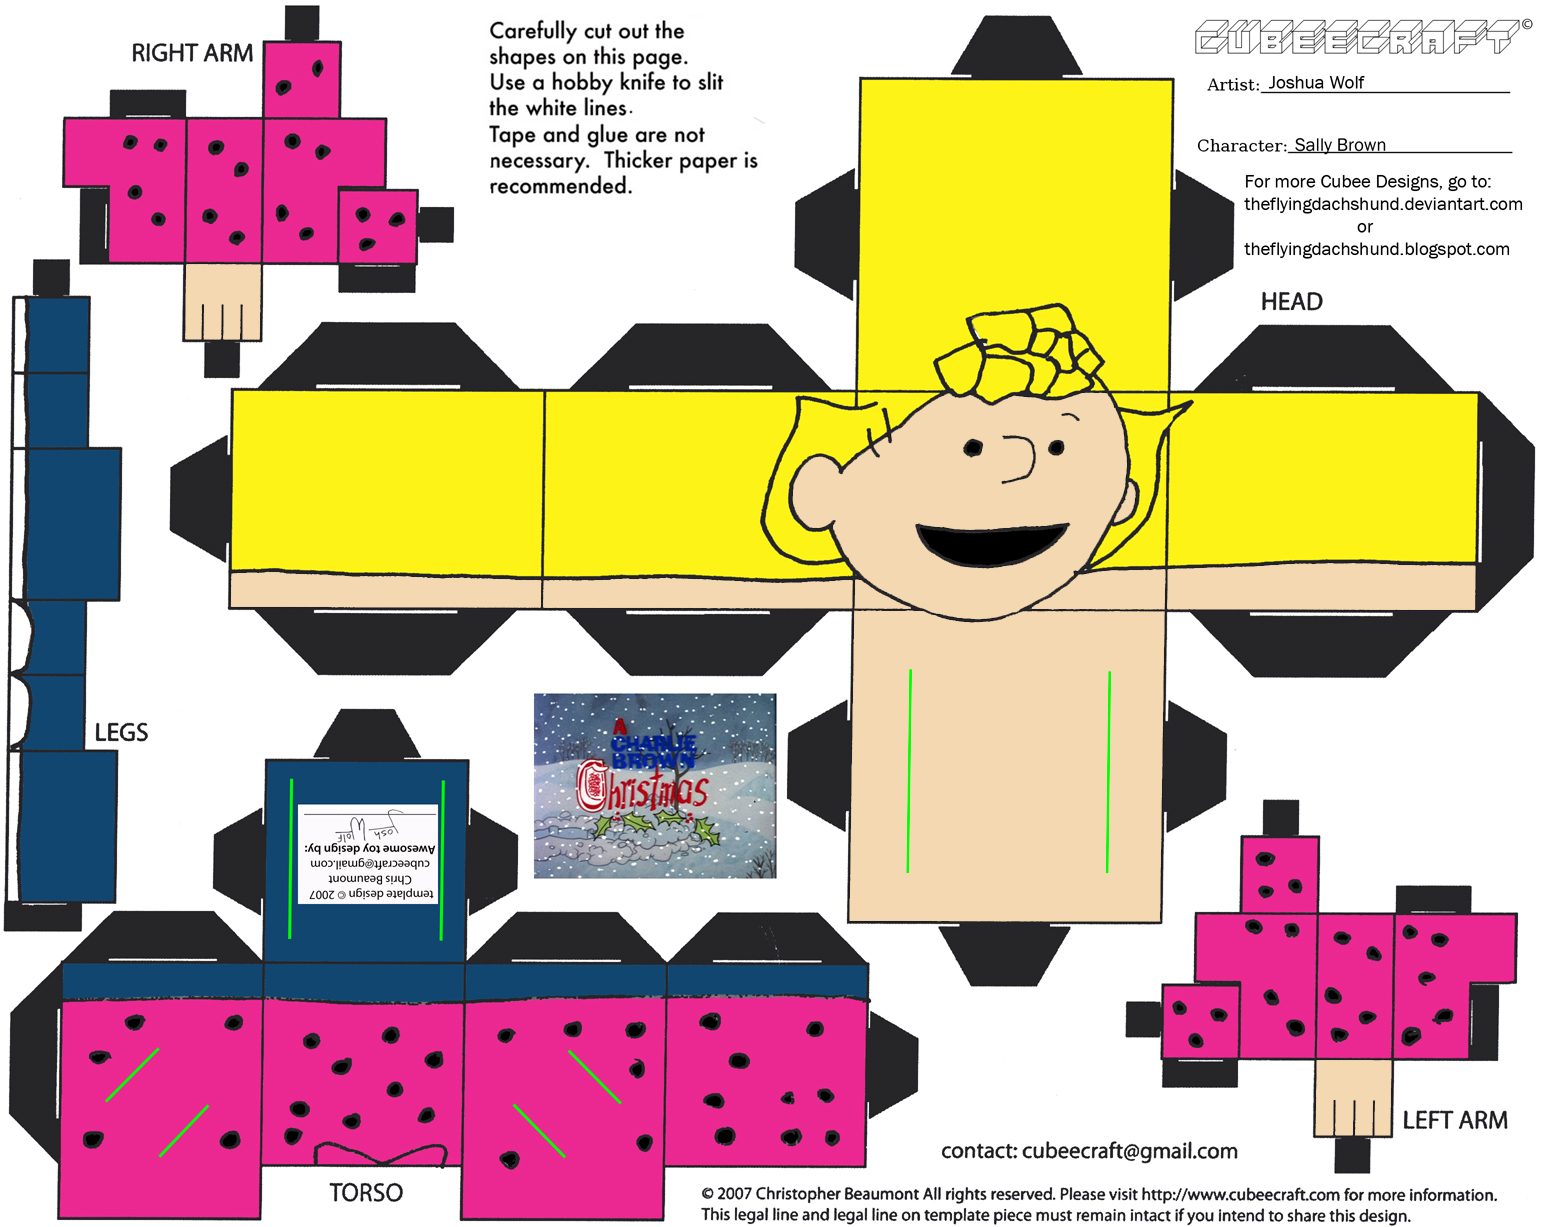 Xmas4: Sally Brown Cubee by